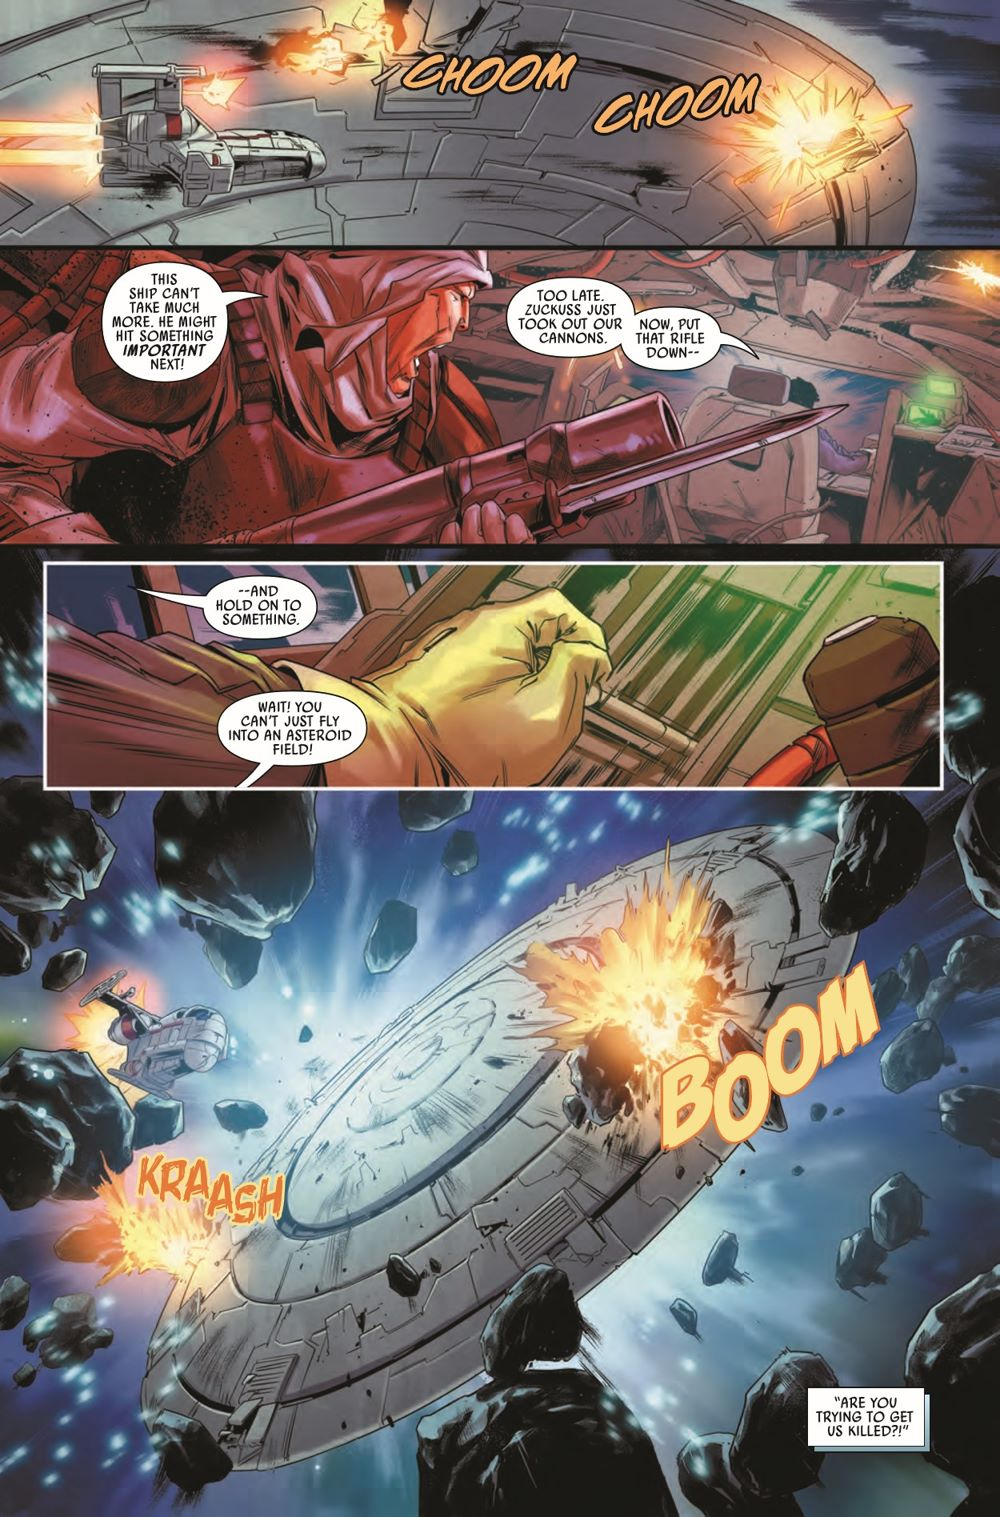 STWBOUNTYHUNT2020012_Preview-2 ComicList Previews: STAR WARS BOUNTY HUNTERS #12